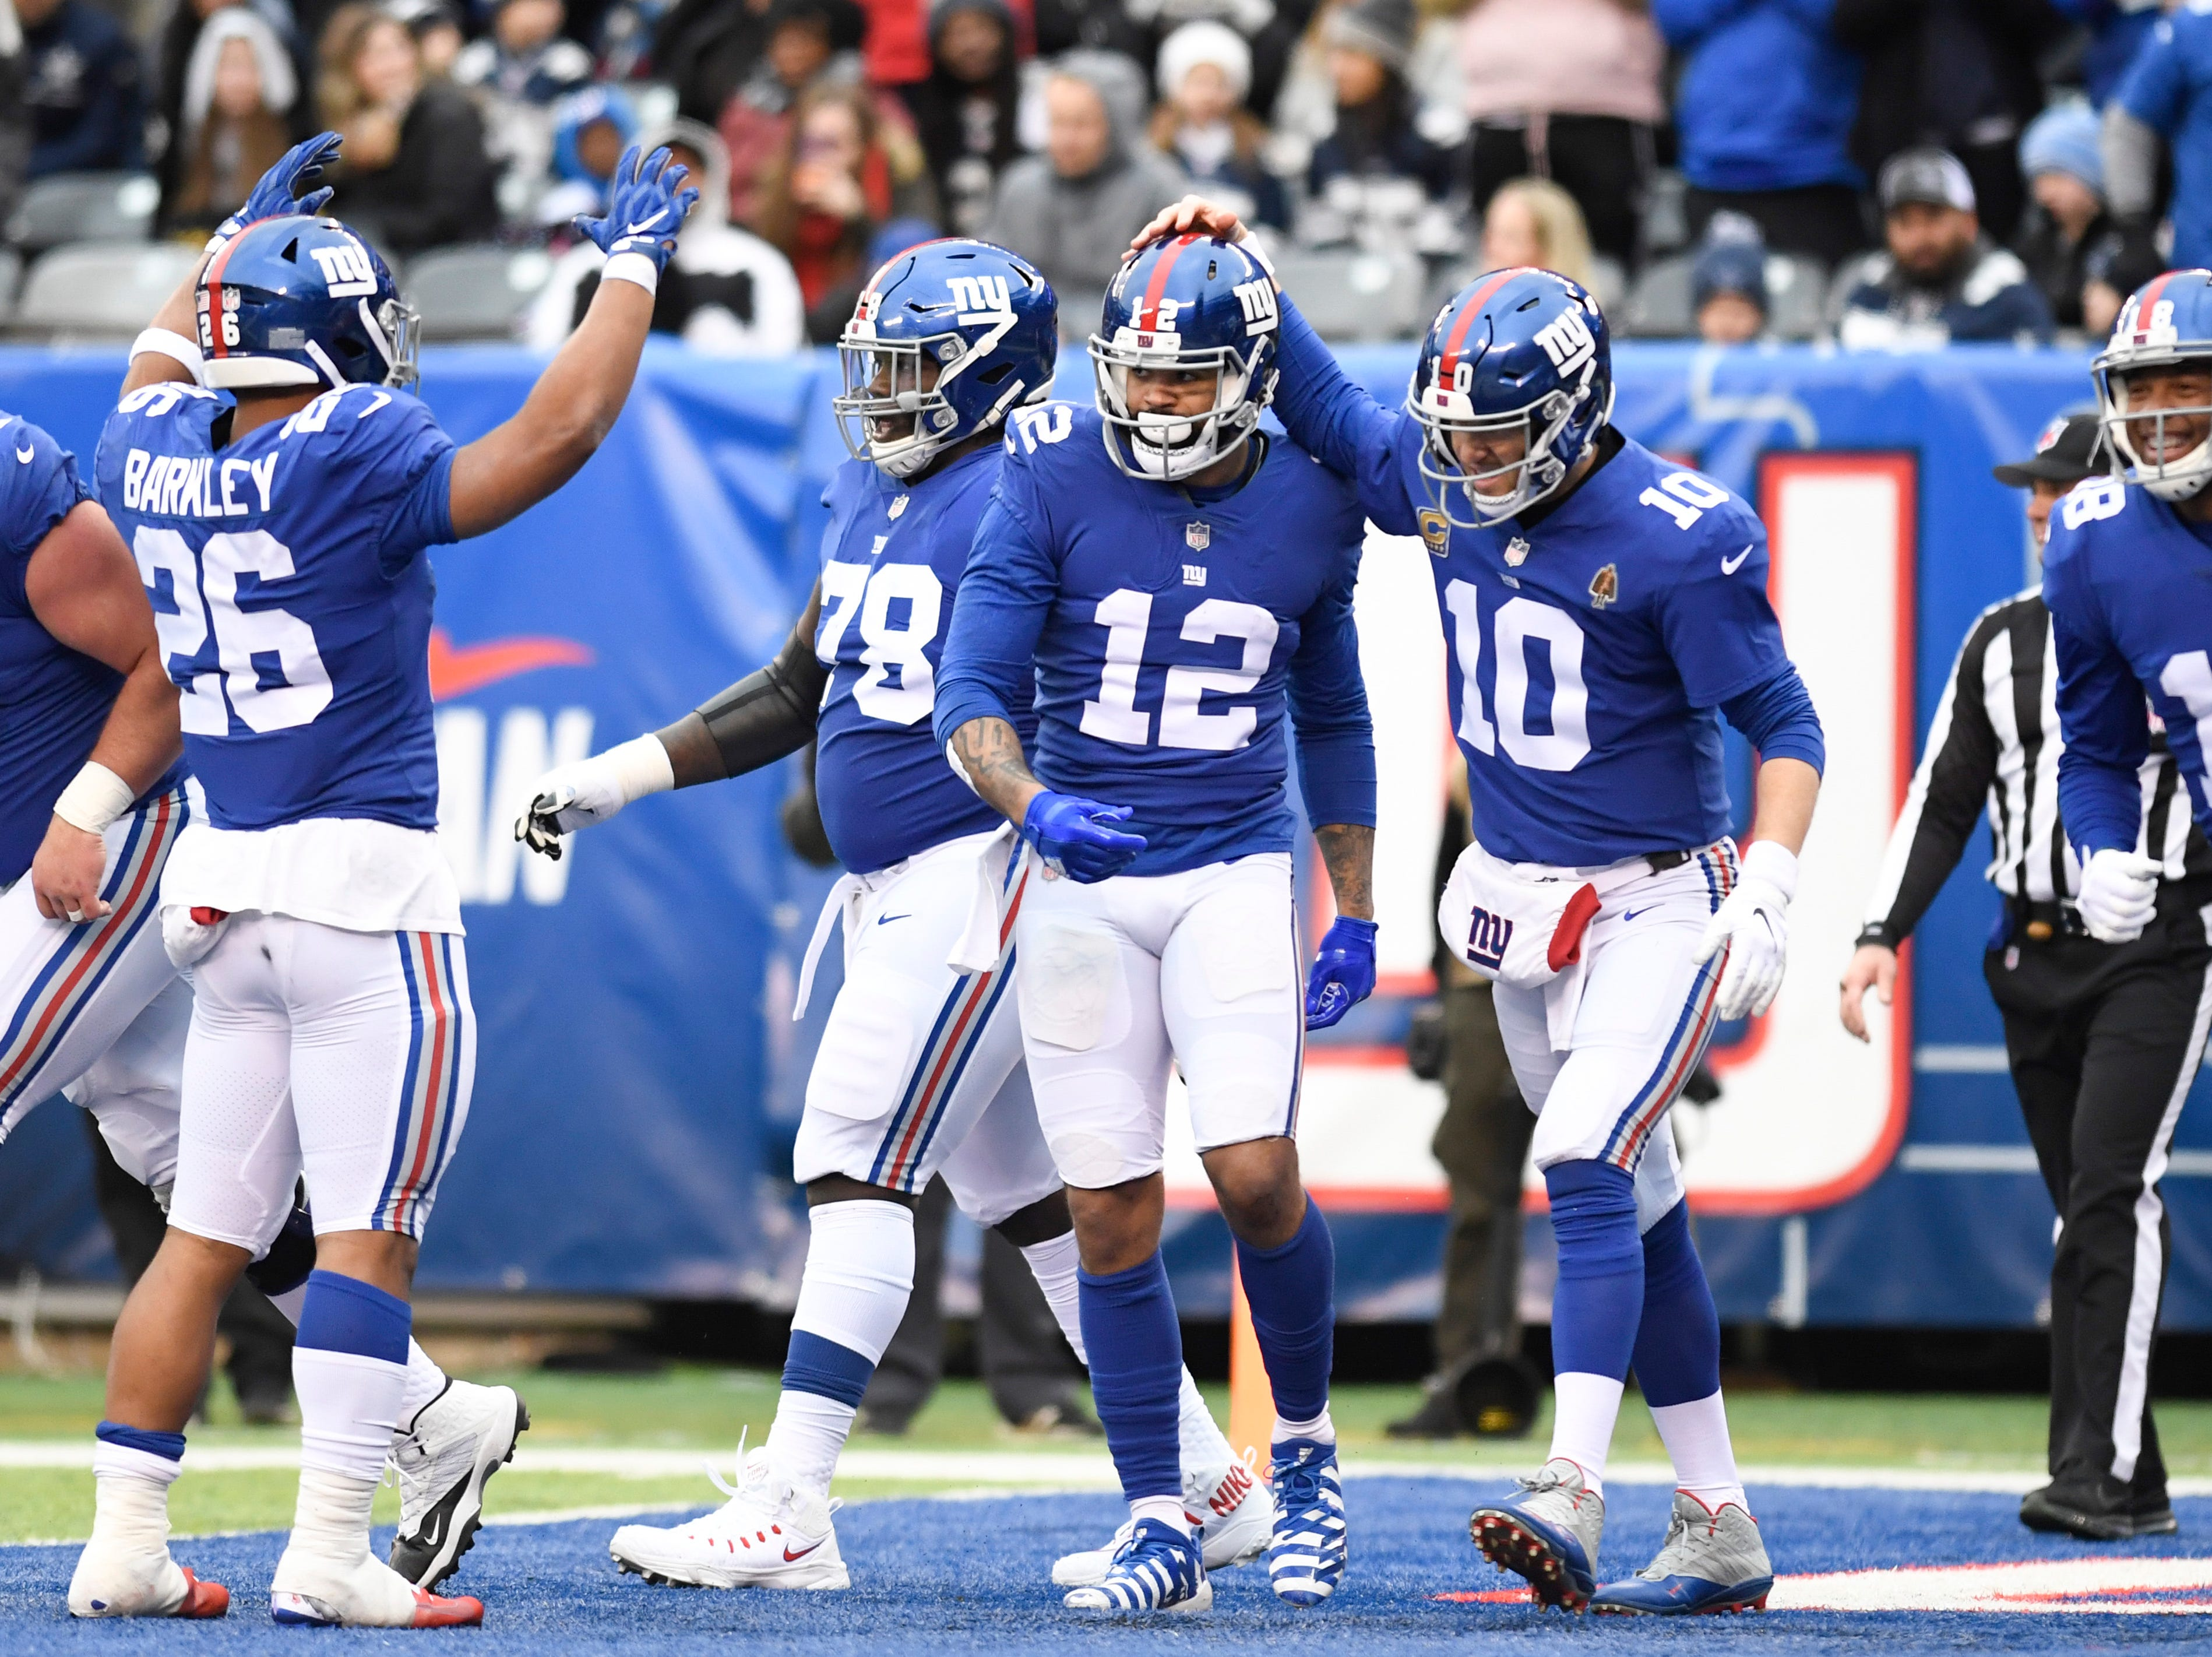 New York Giants quarterback Eli Manning (10) and New York Giants wide receiver Cody Latimer (12) celebrate Latimer's touchdown in the first half. The New York Giants face the Dallas Cowboys in the last regular season game on Sunday, Dec. 30, 2018, in East Rutherford.